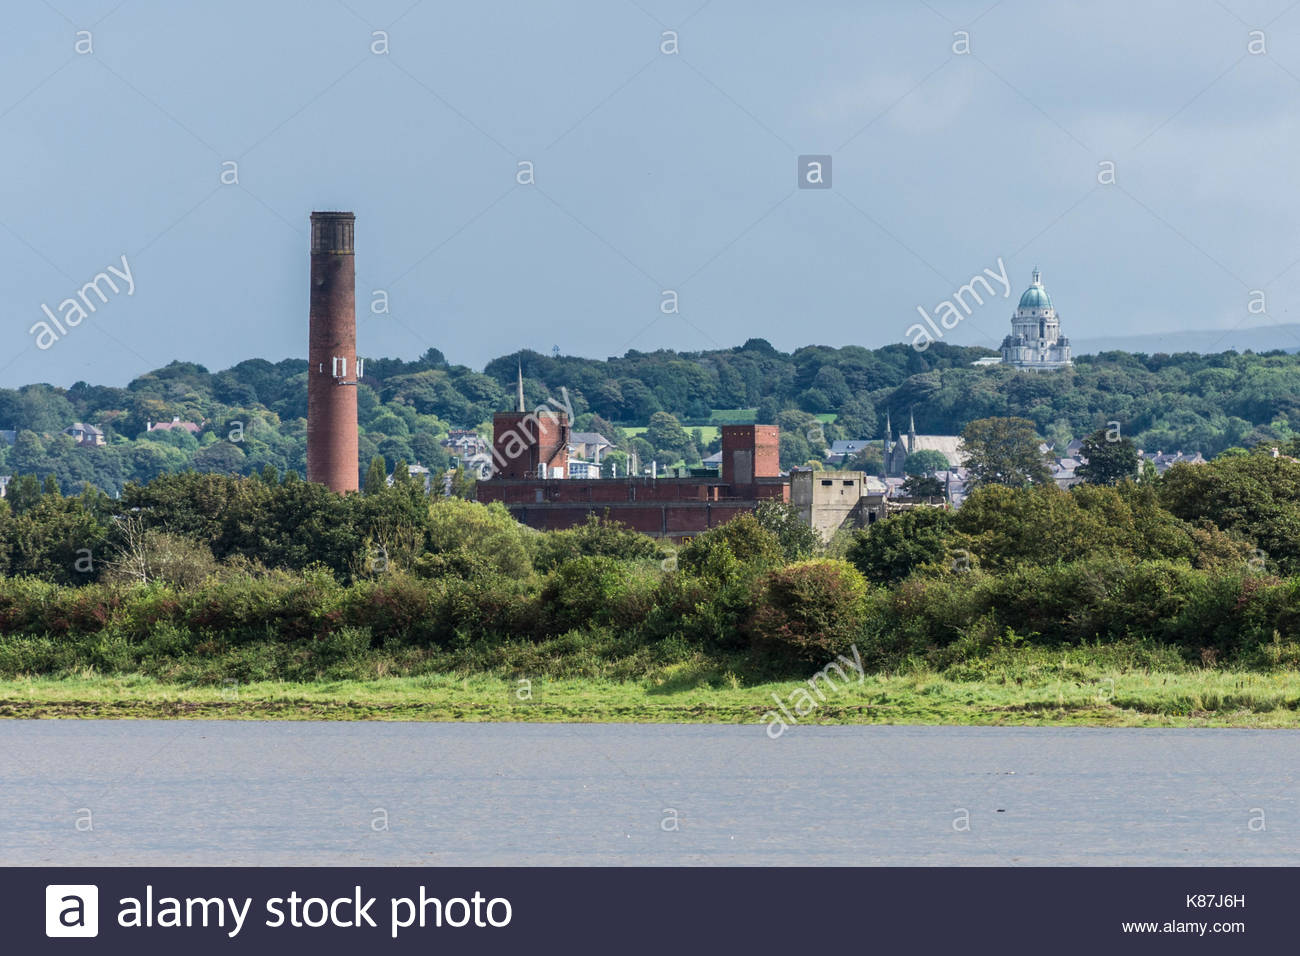 Disused factories and the Ashton memorial on the Lancaster skyline - Stock Image